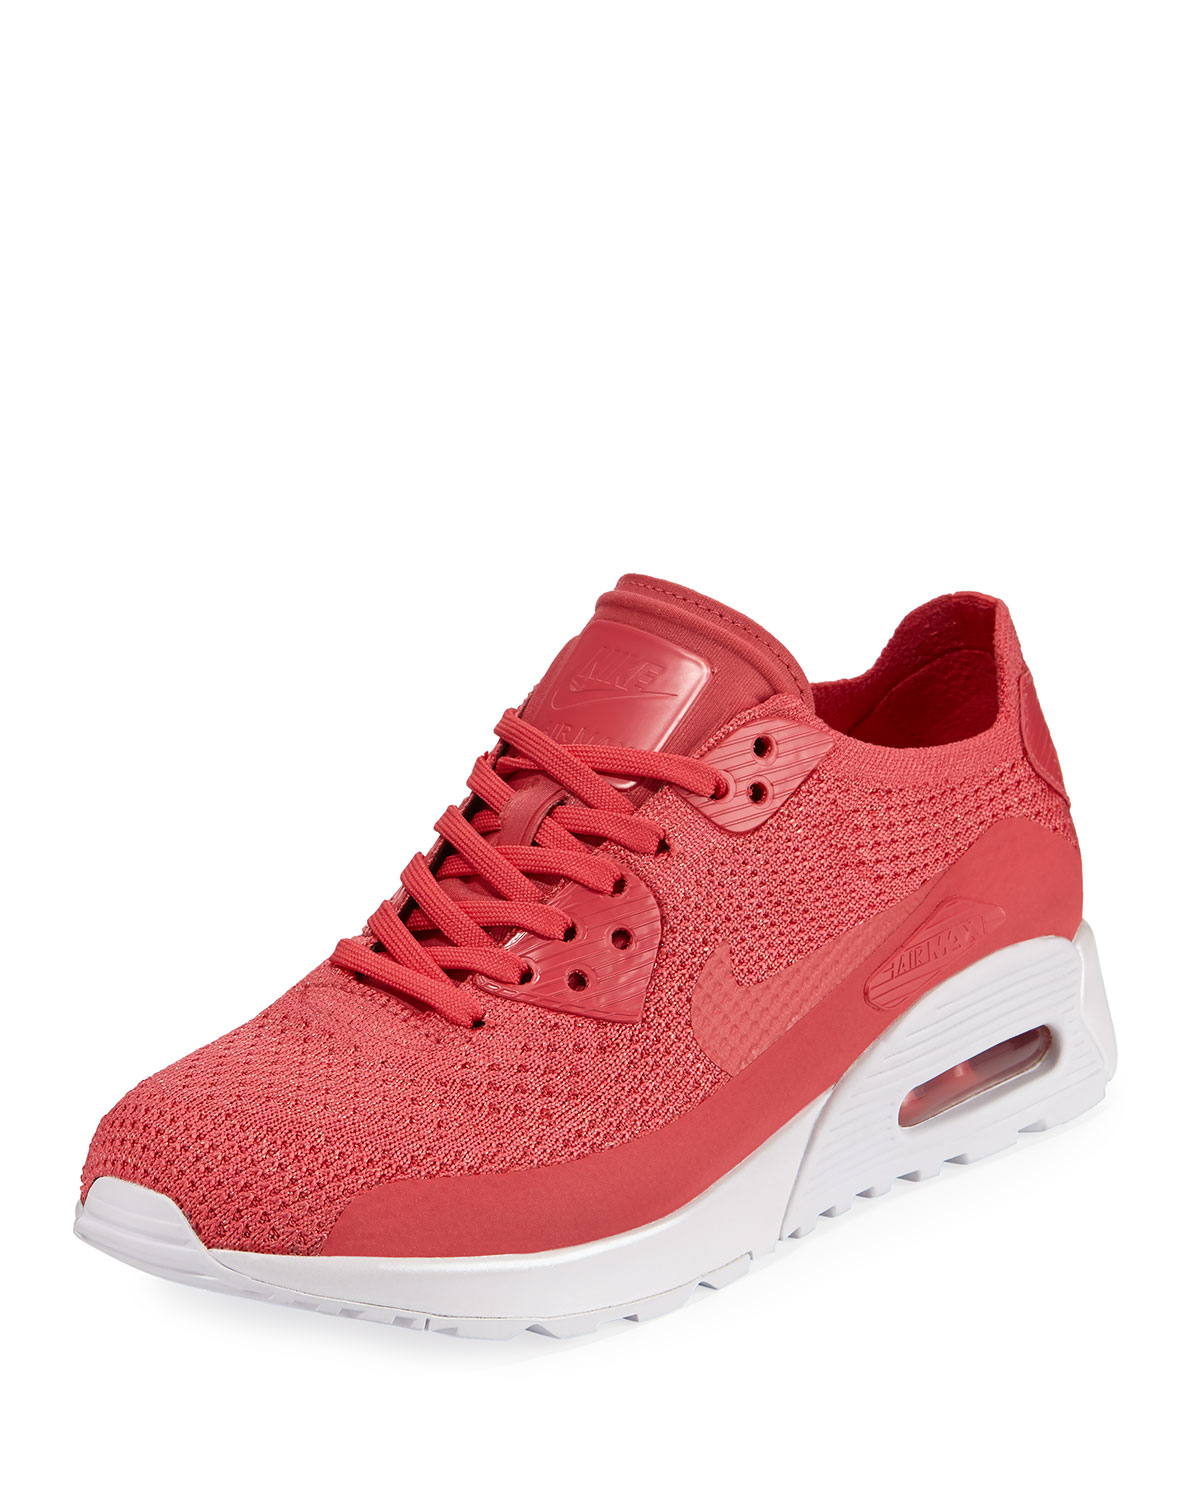 Nike Air Max 90 Ultra 2.0 Flyknit Sneakers  c776de1588f4